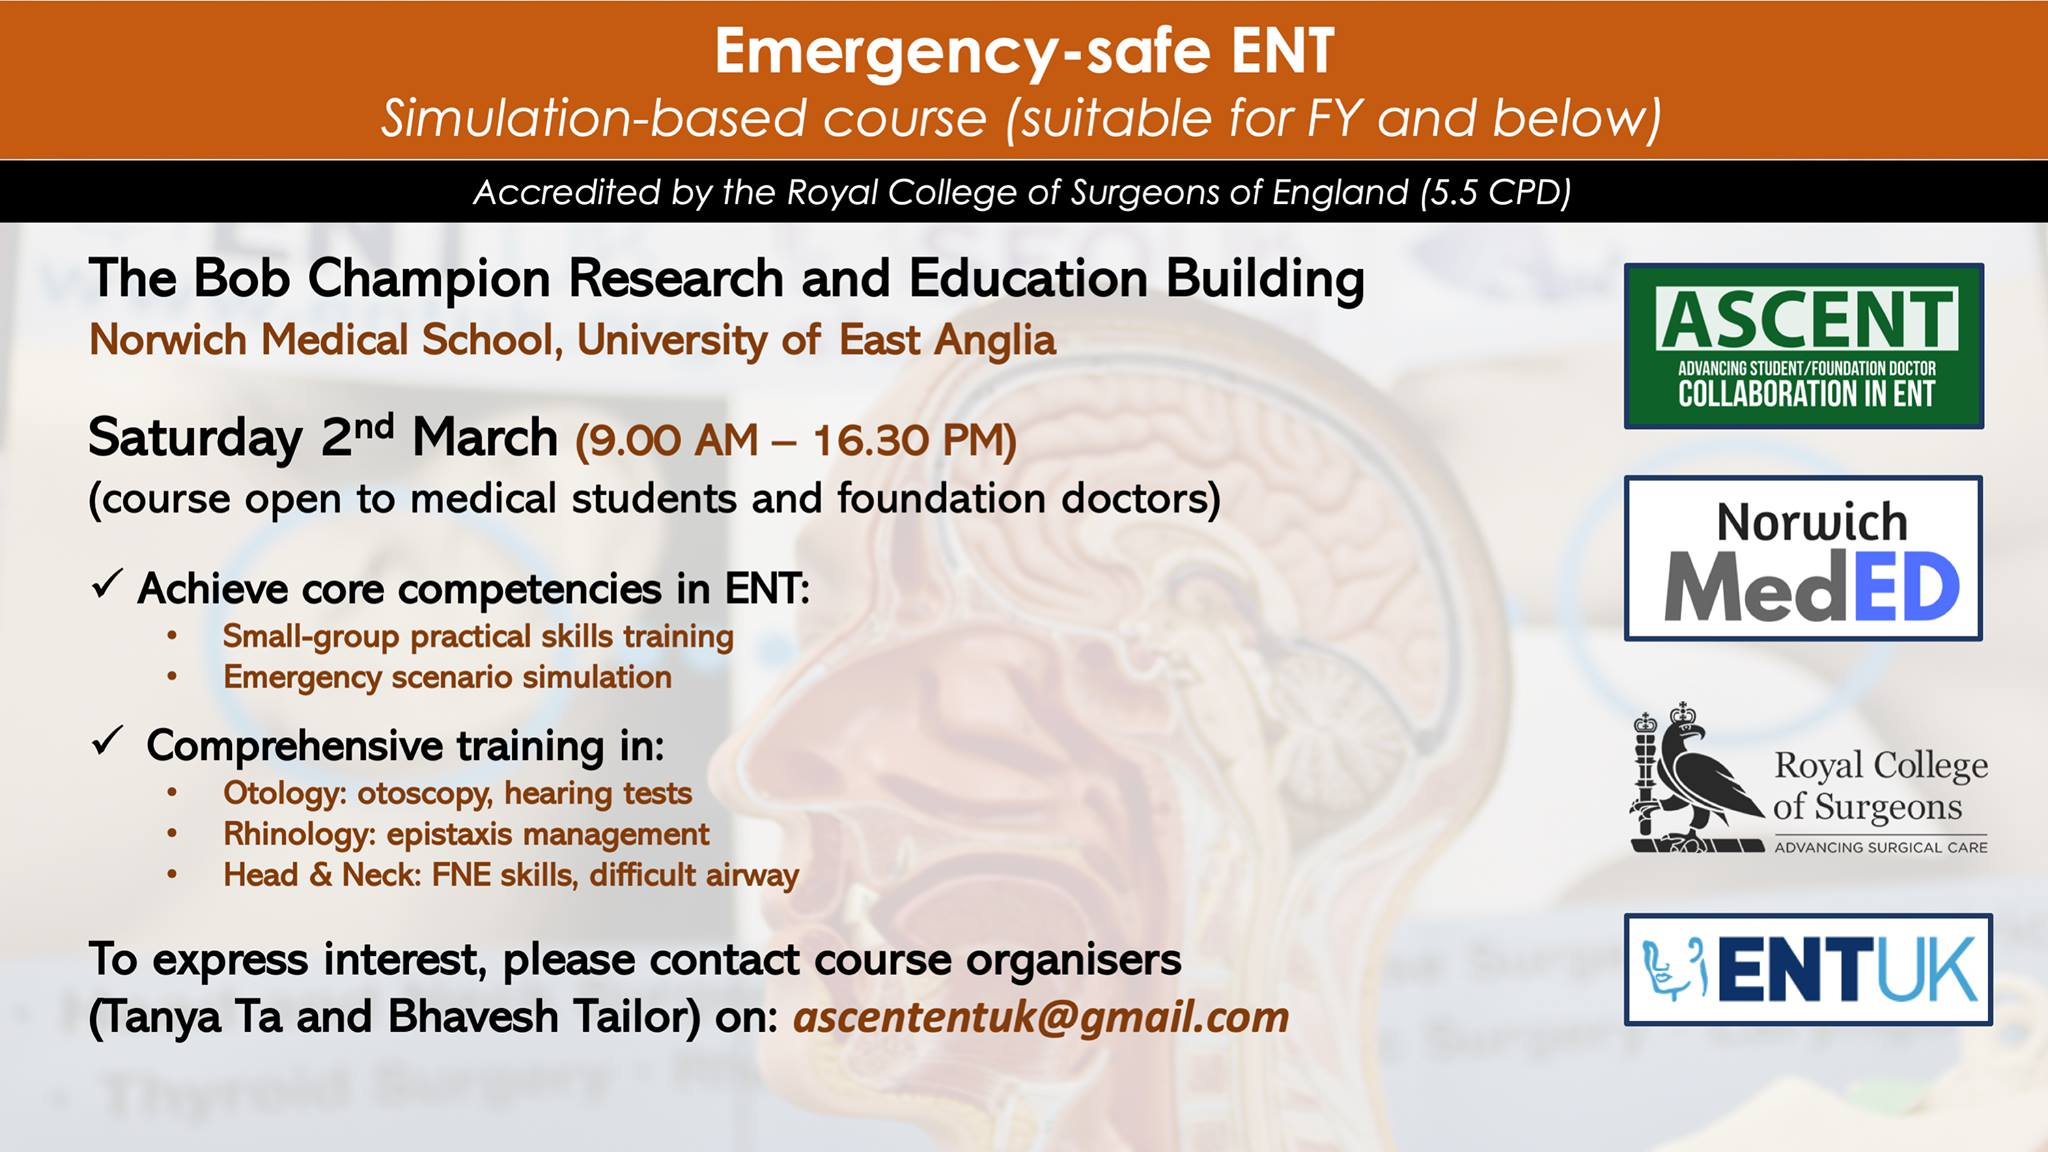 Emergency-safe ENT – Simulation Based Course